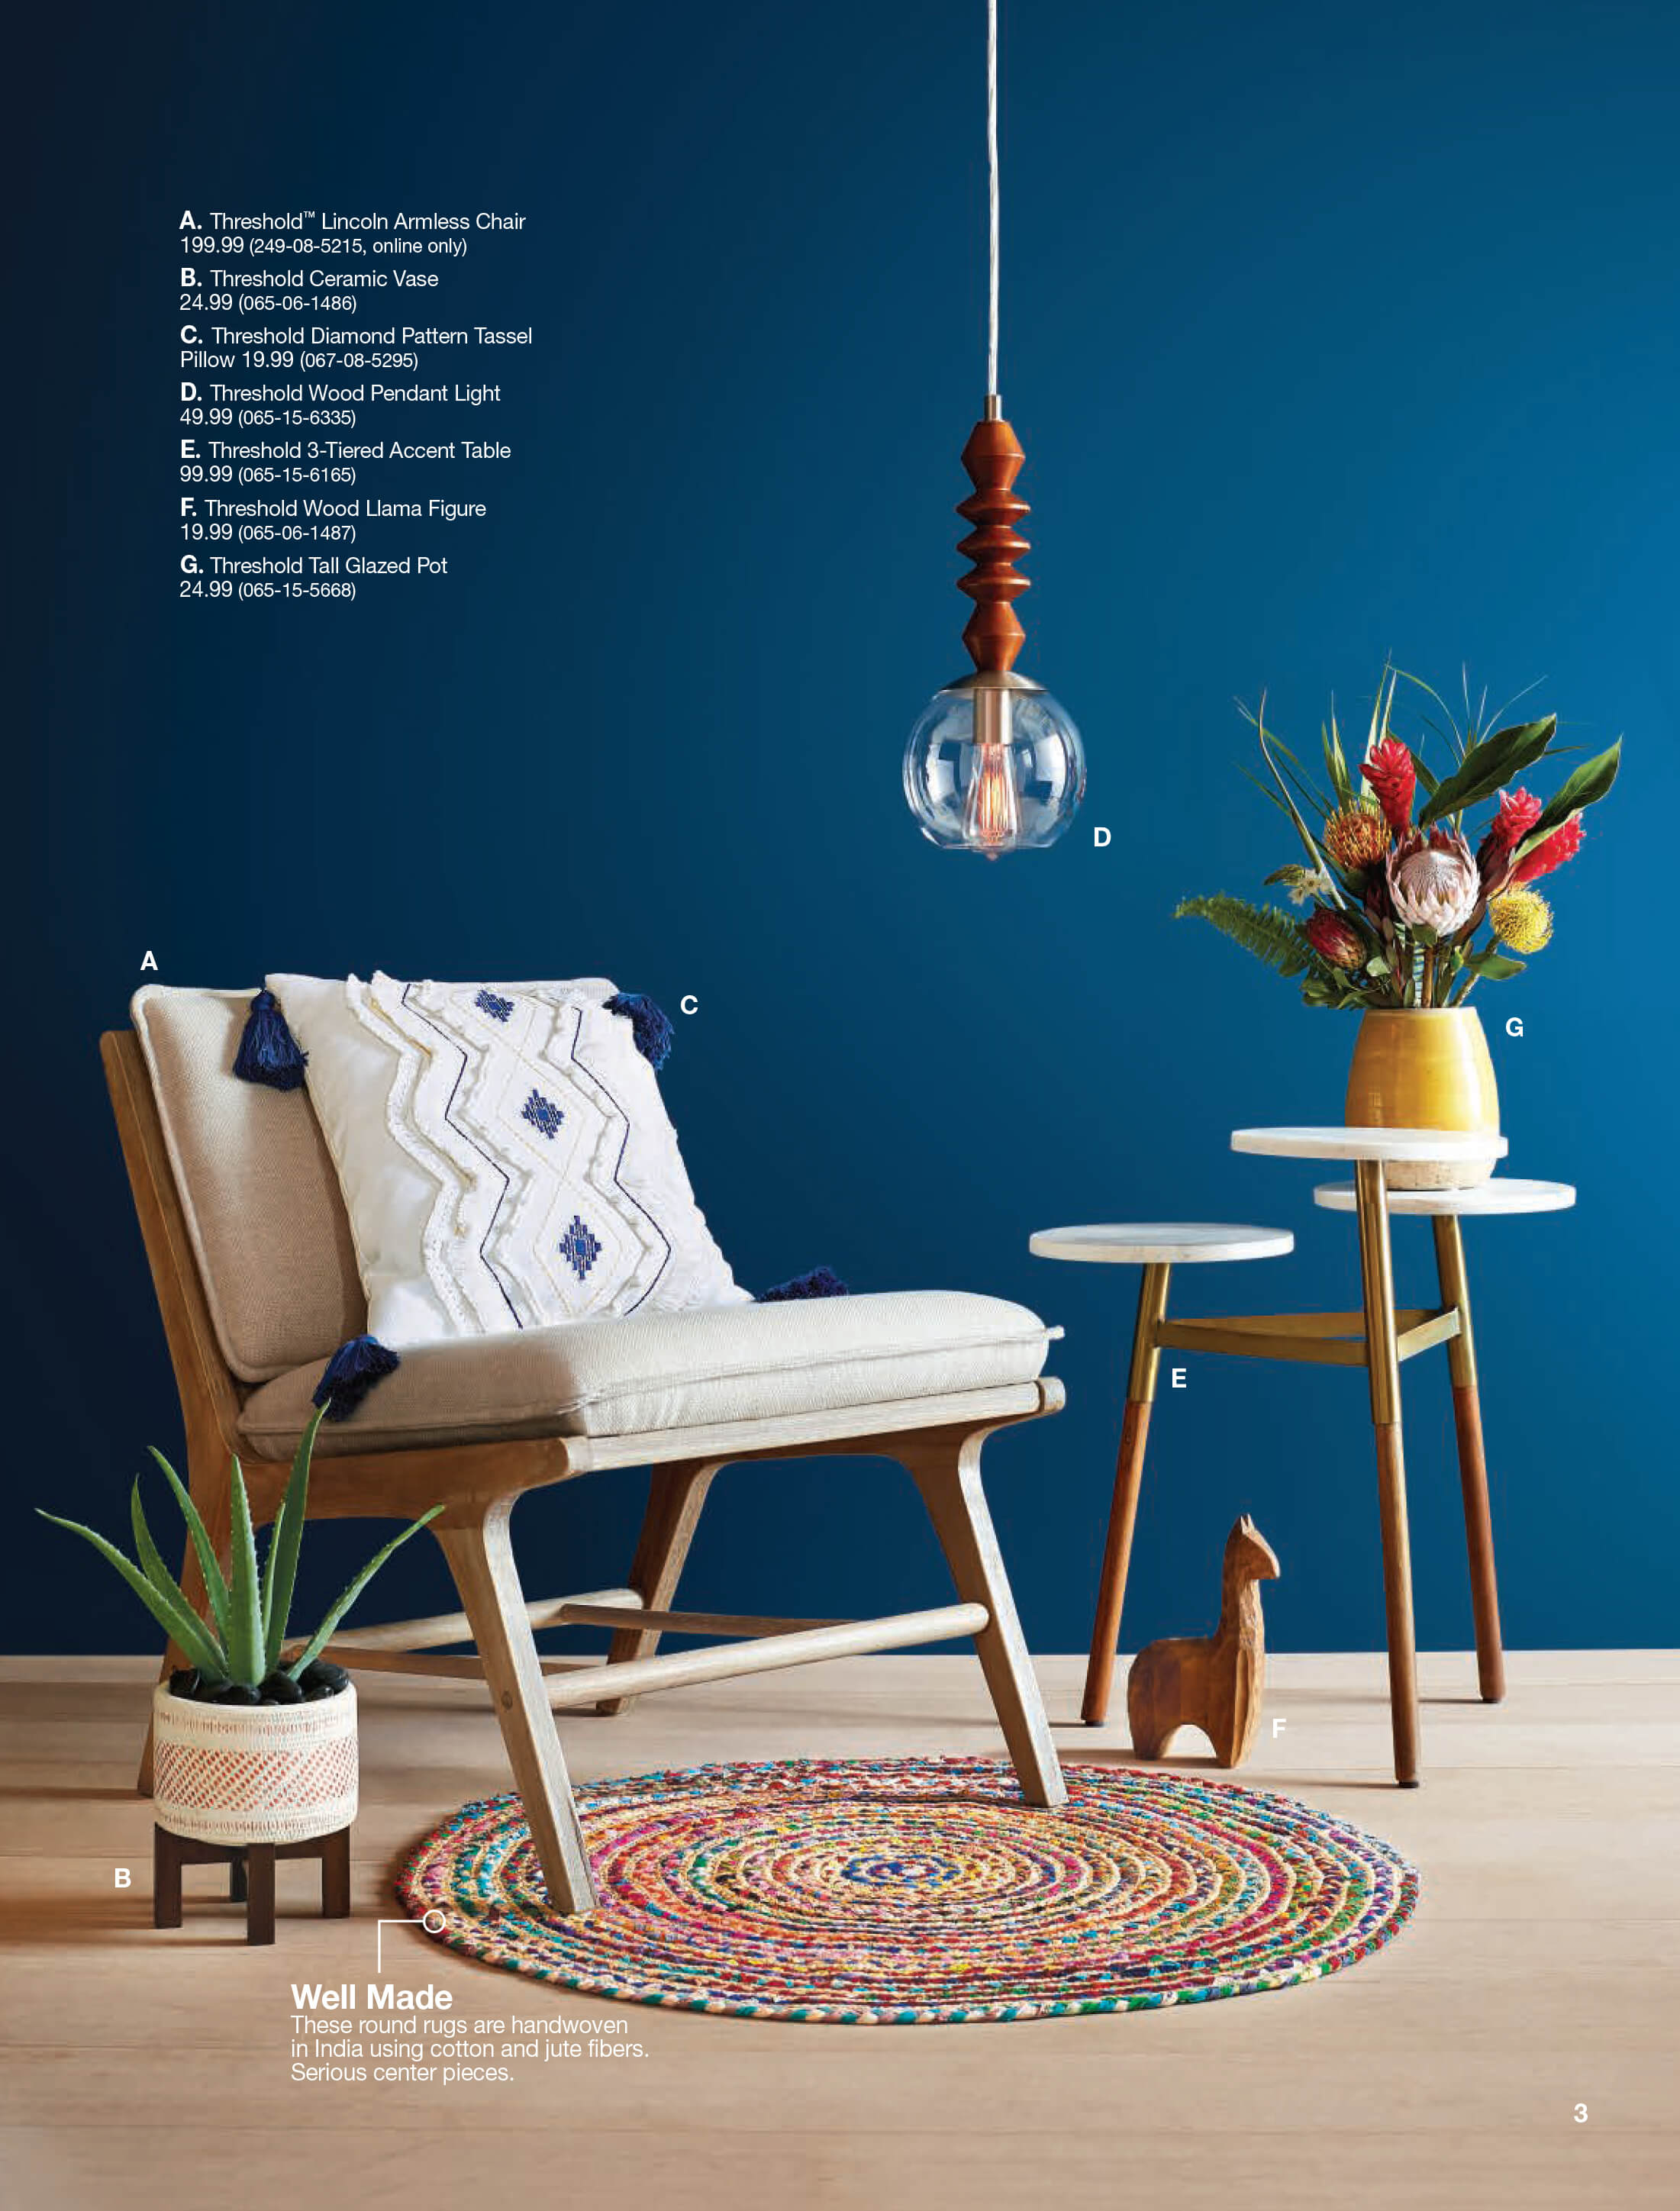 new target home product and emily henderson first look spring catalog minsmere cane accent table modern coffee ideas console diy wood end furniture moving pads gold metal bench